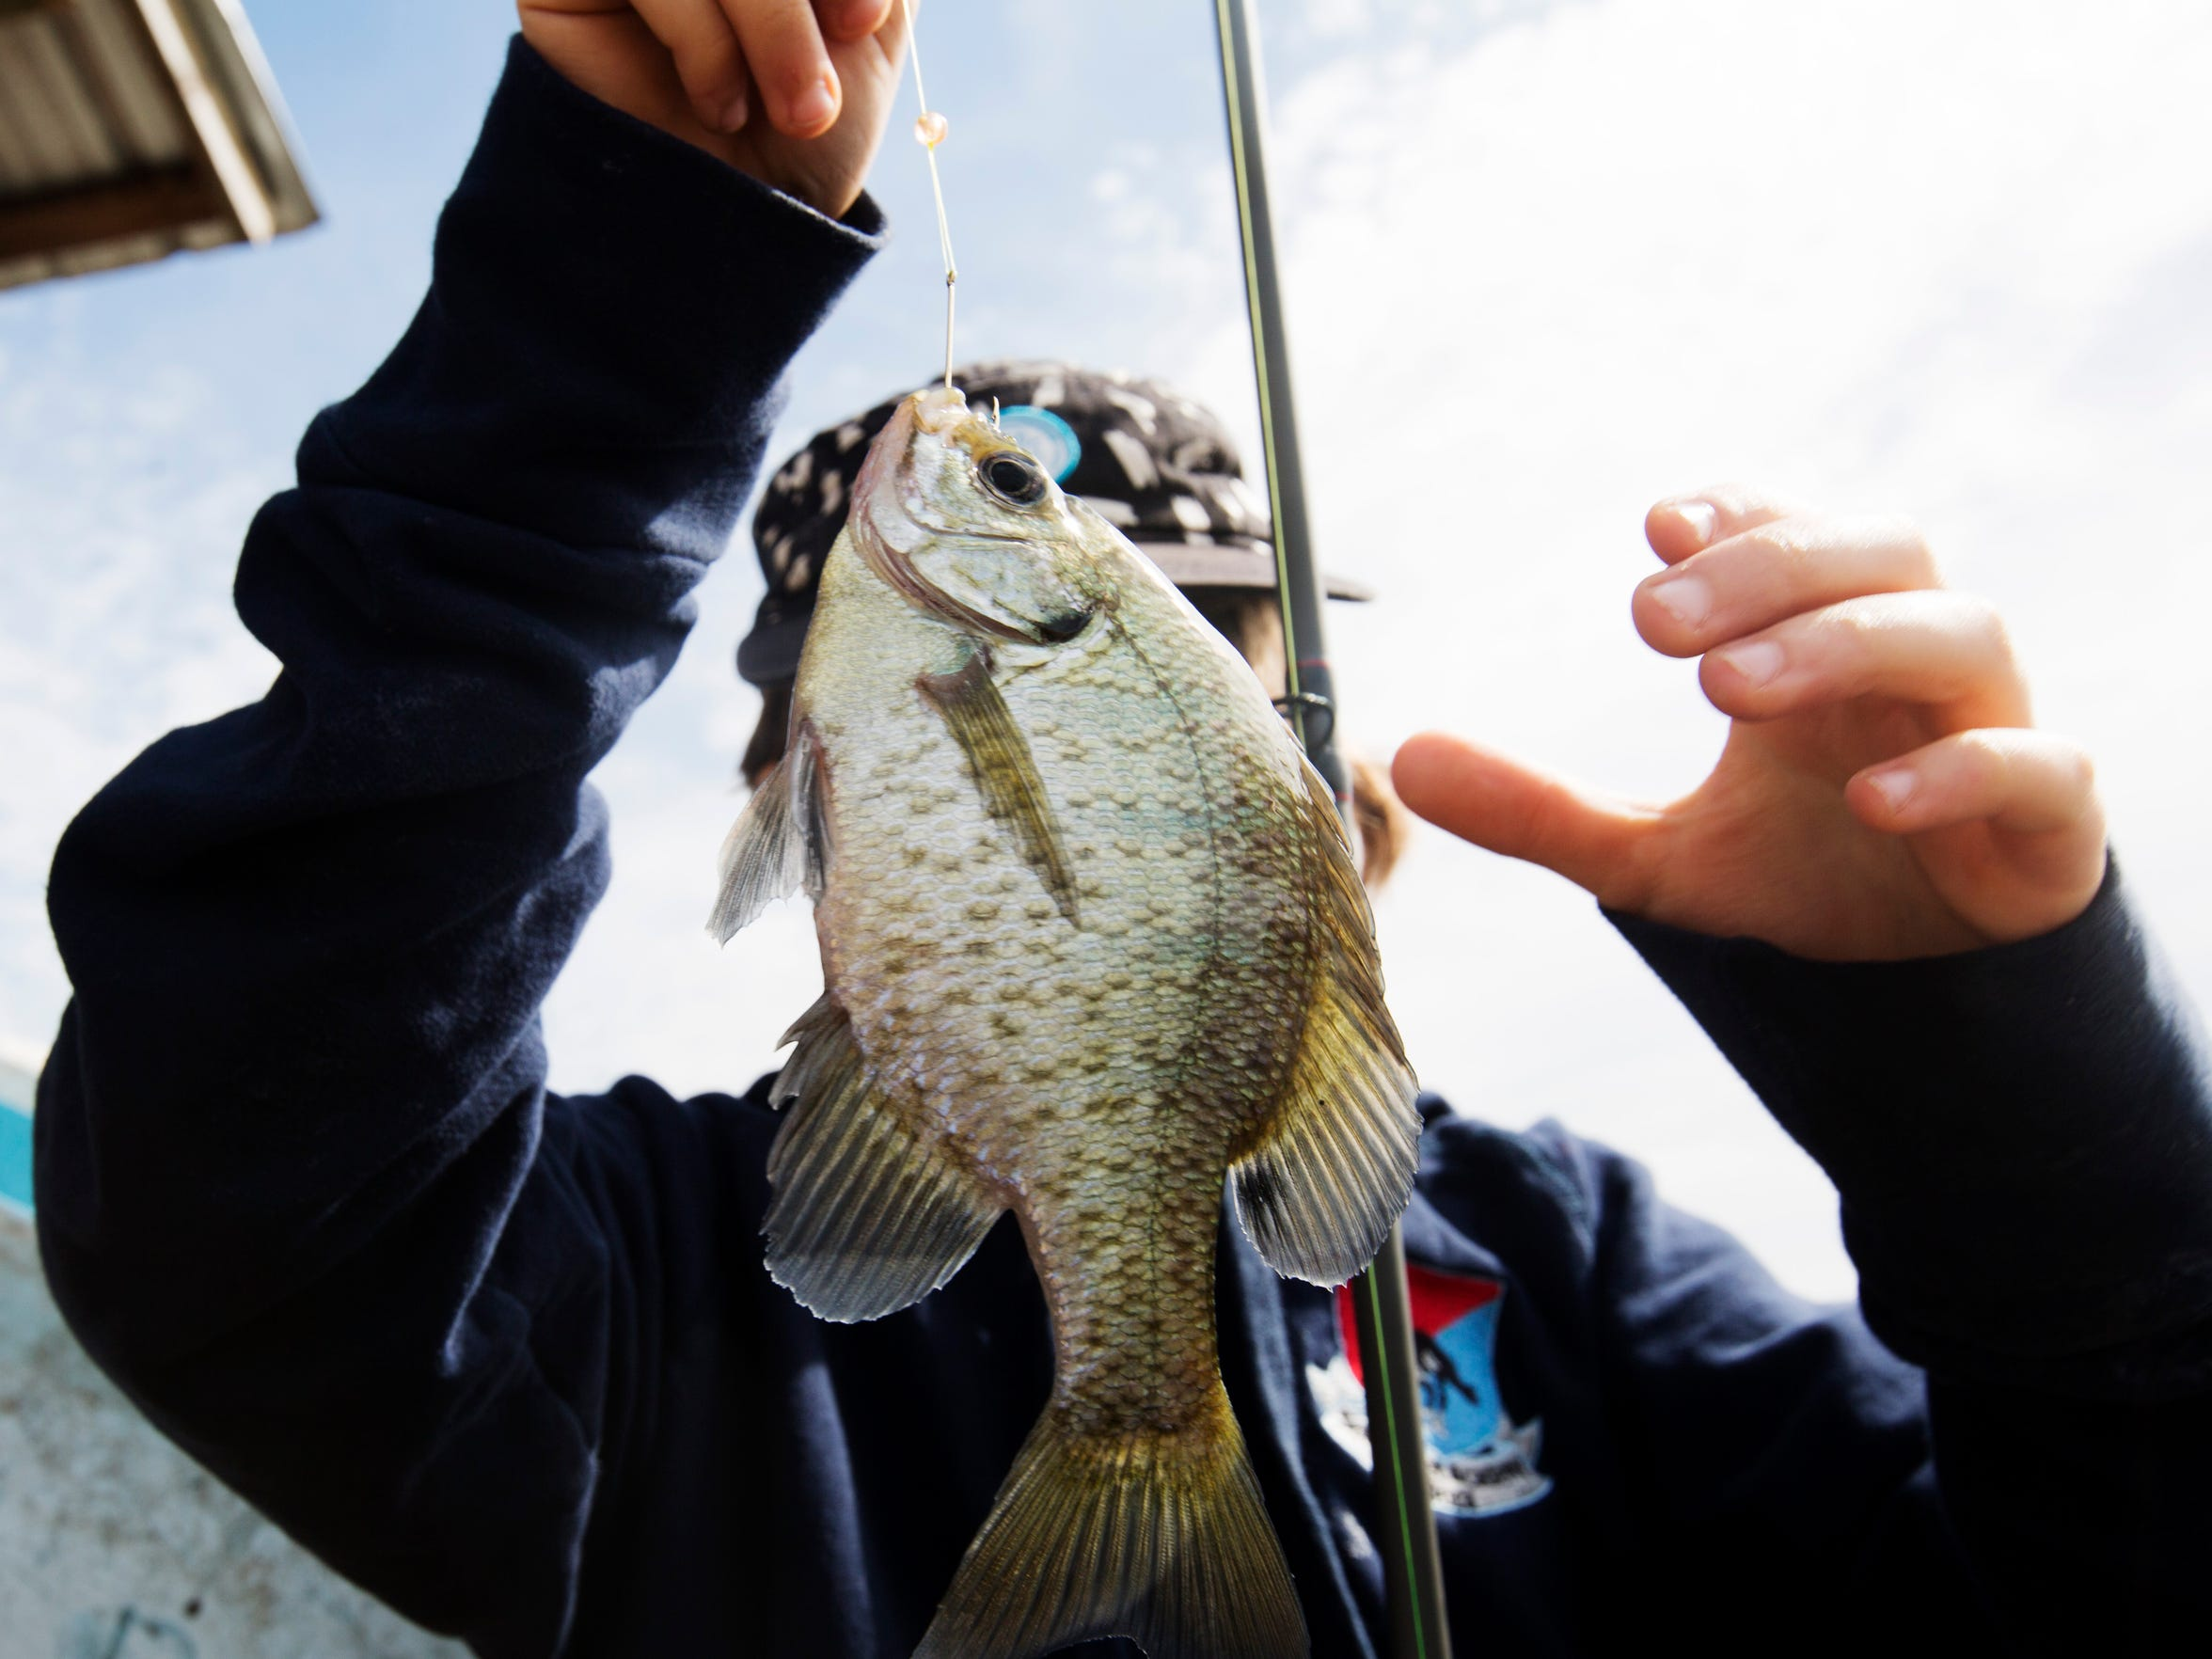 Dax Louvet, a resident of Boca Raton prepares to toss back a crappie he caught near Slim's Fish Camp in Belle Glade on Lake Okeechobee on Monday 3/21/2016.  Despite high water levels on the lake due to high amounts of rain, anglers say the  water quality and fishing has been good.